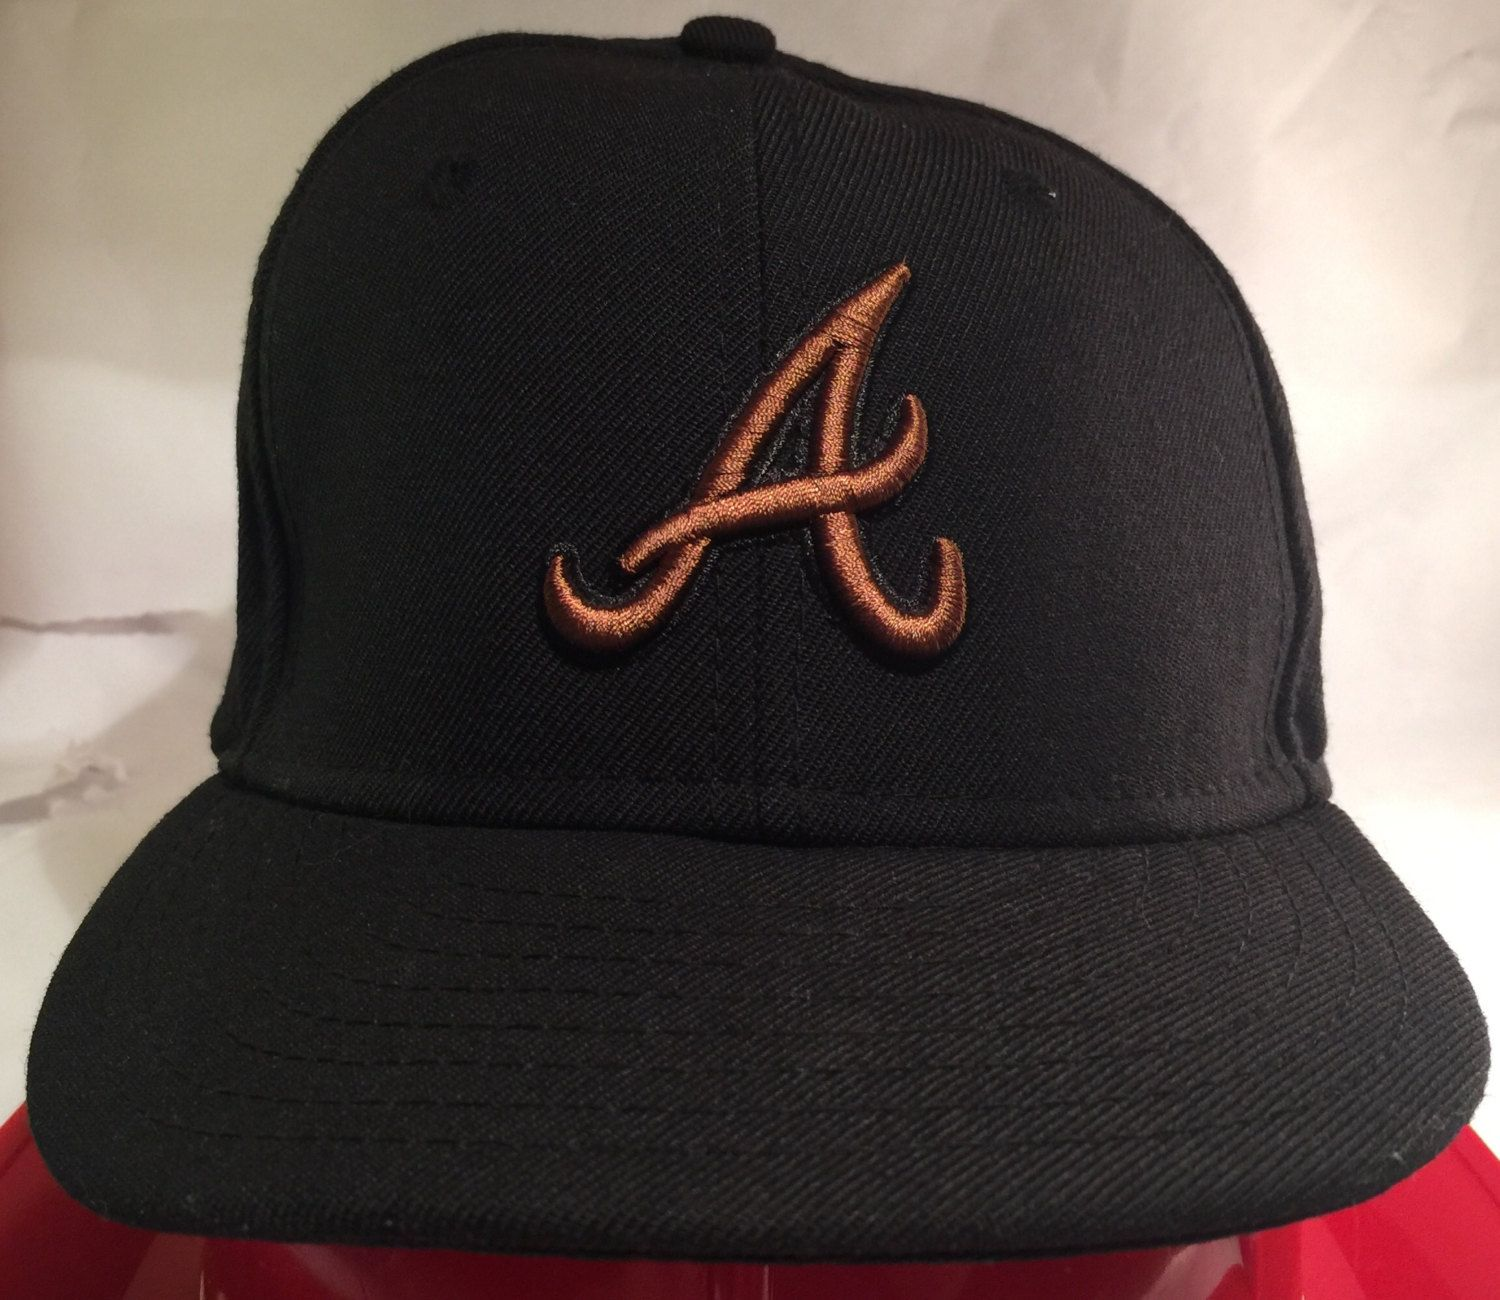 Atlanta Braves Brown And Black New Era Fitted Cap Size 6 5 8 By Corycranksouthats On Etsy New Era Fitted Atlanta Braves New Black